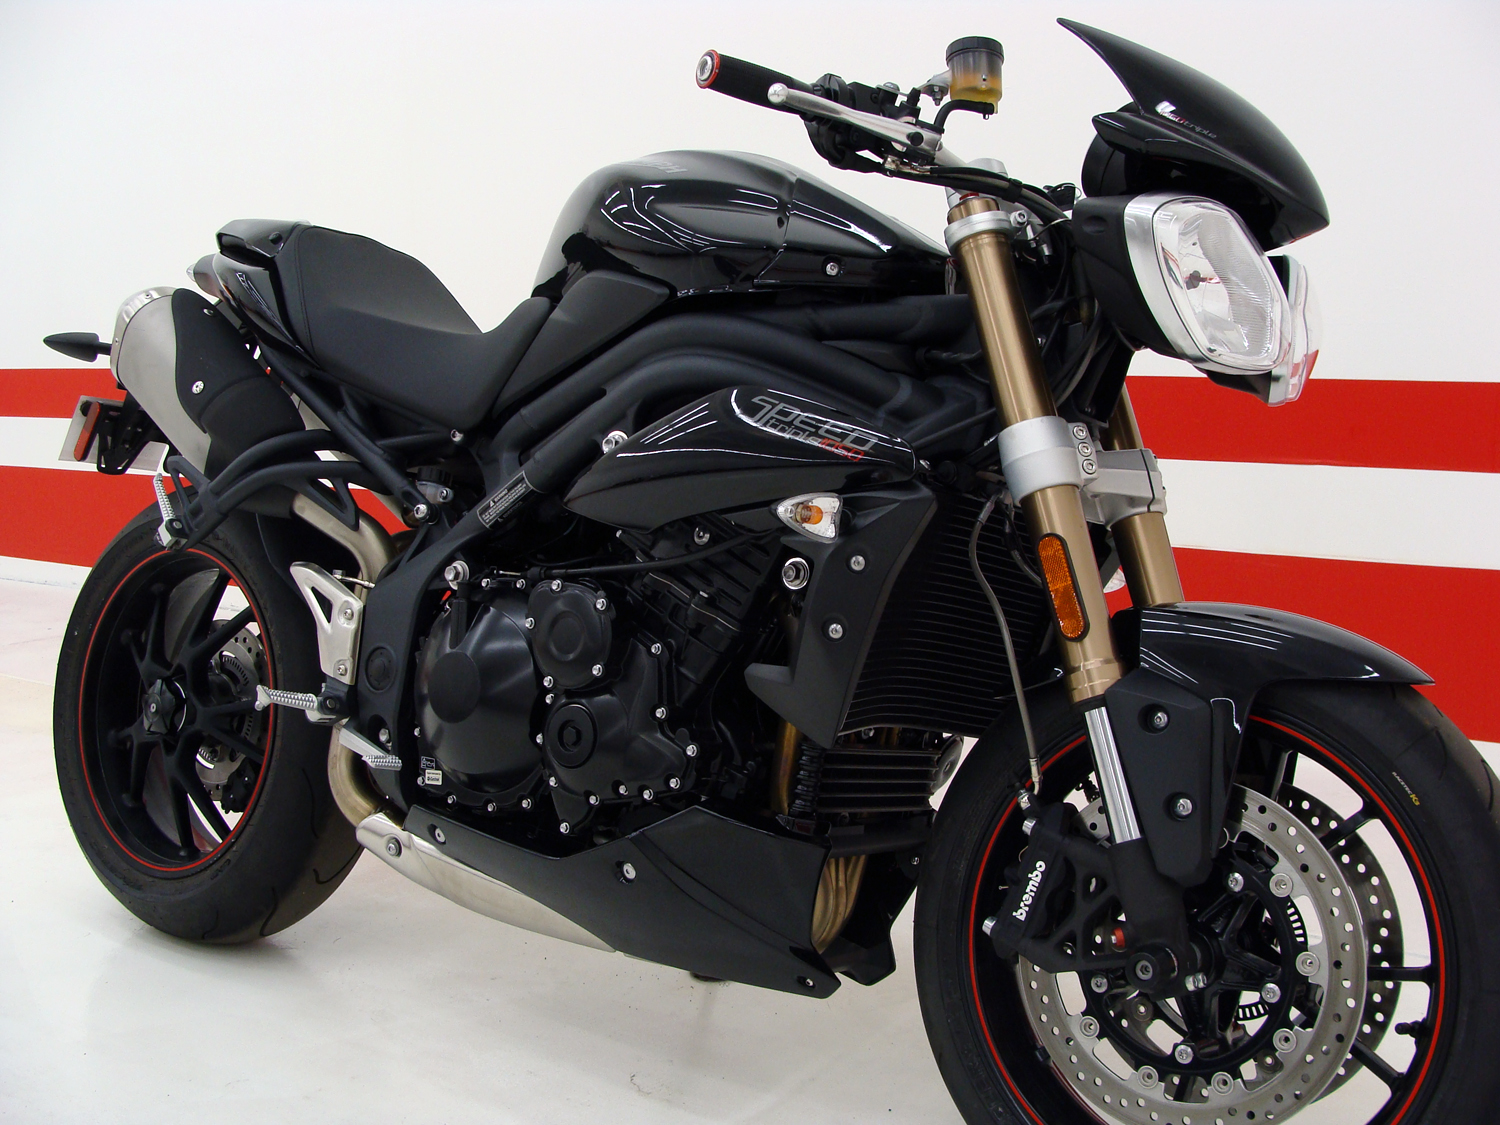 Triumph Speed Triple 1050 (ABS)